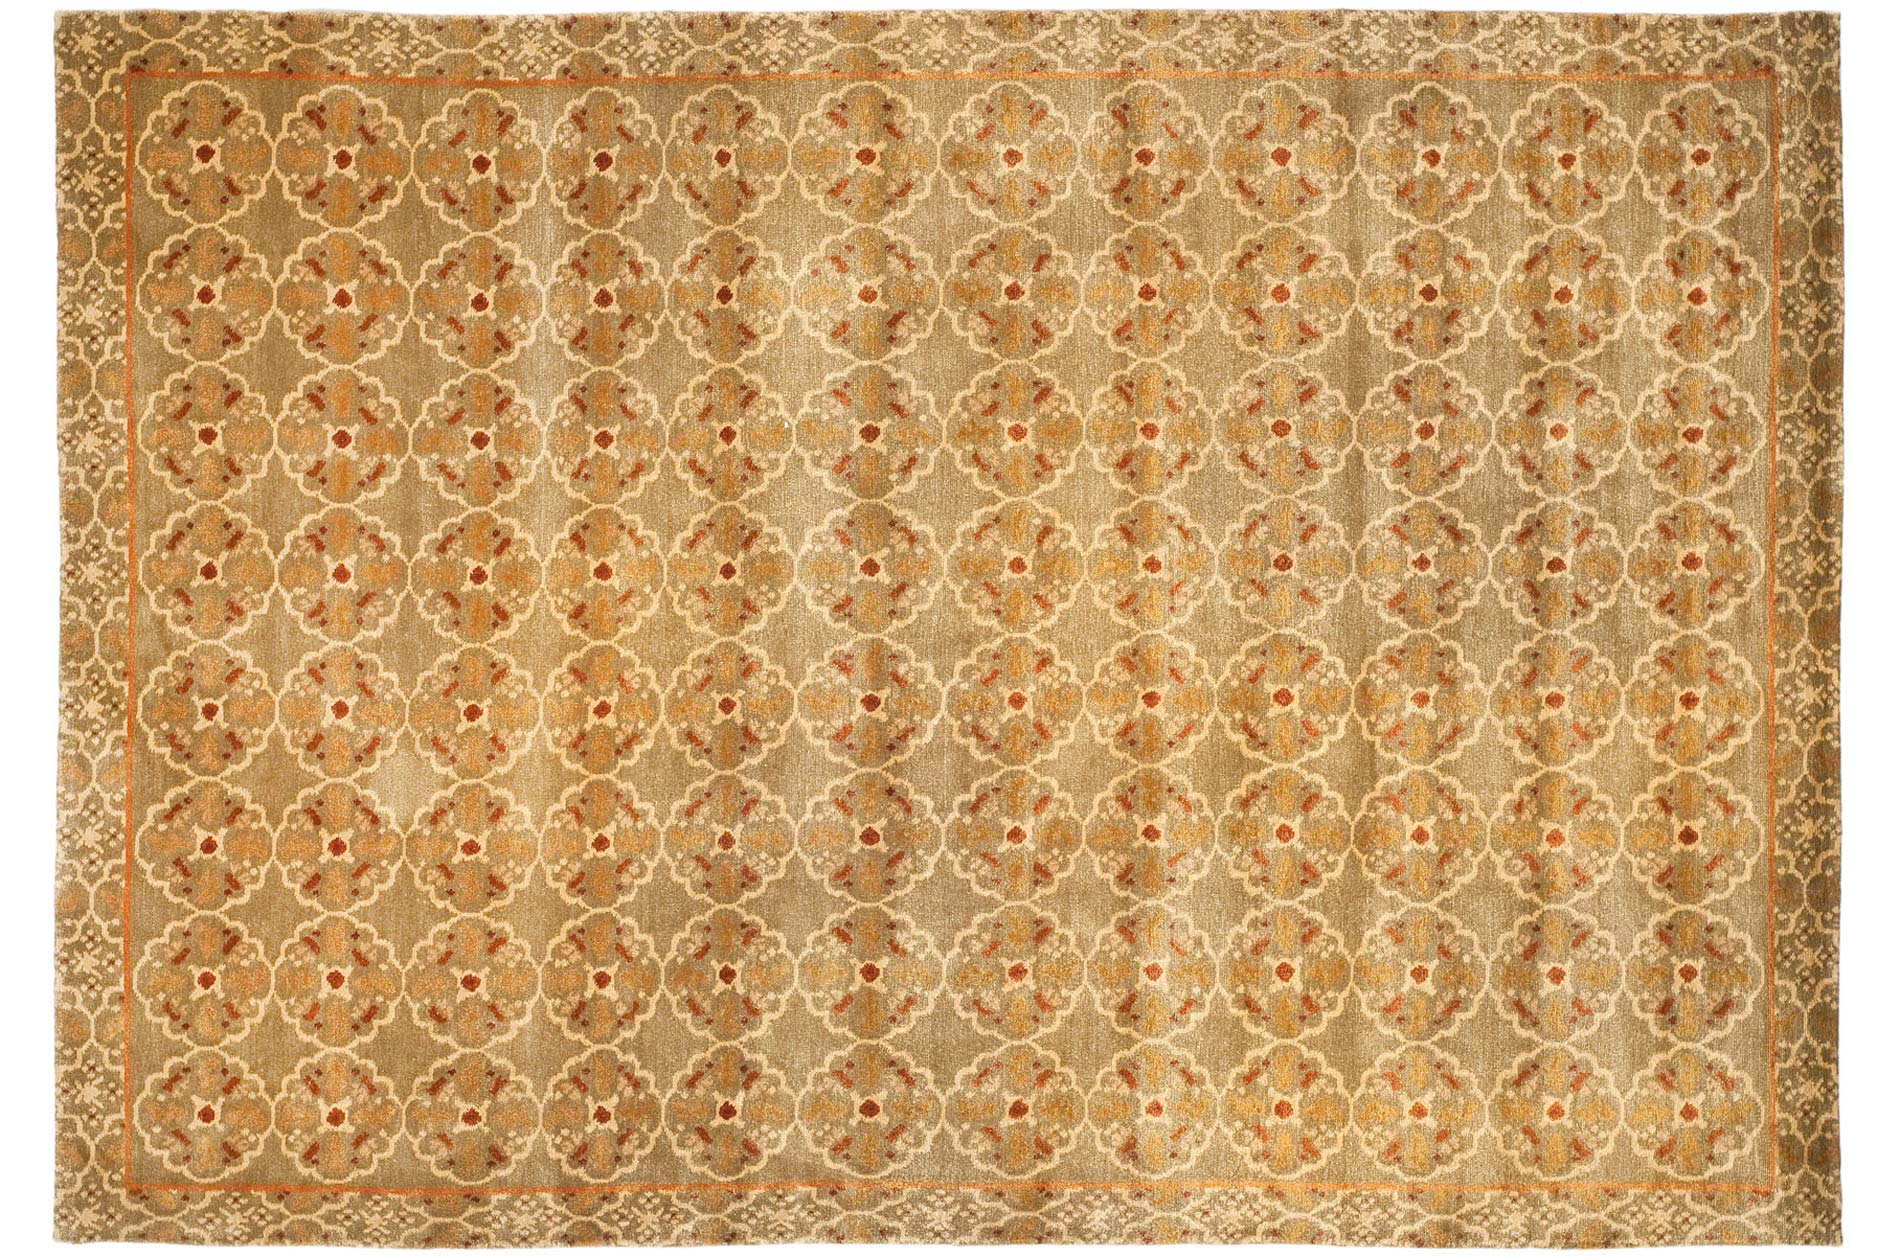 Handmade Thomas O'Brien Caniato Terracotta Wool/ Silk Rug (9' x 12')